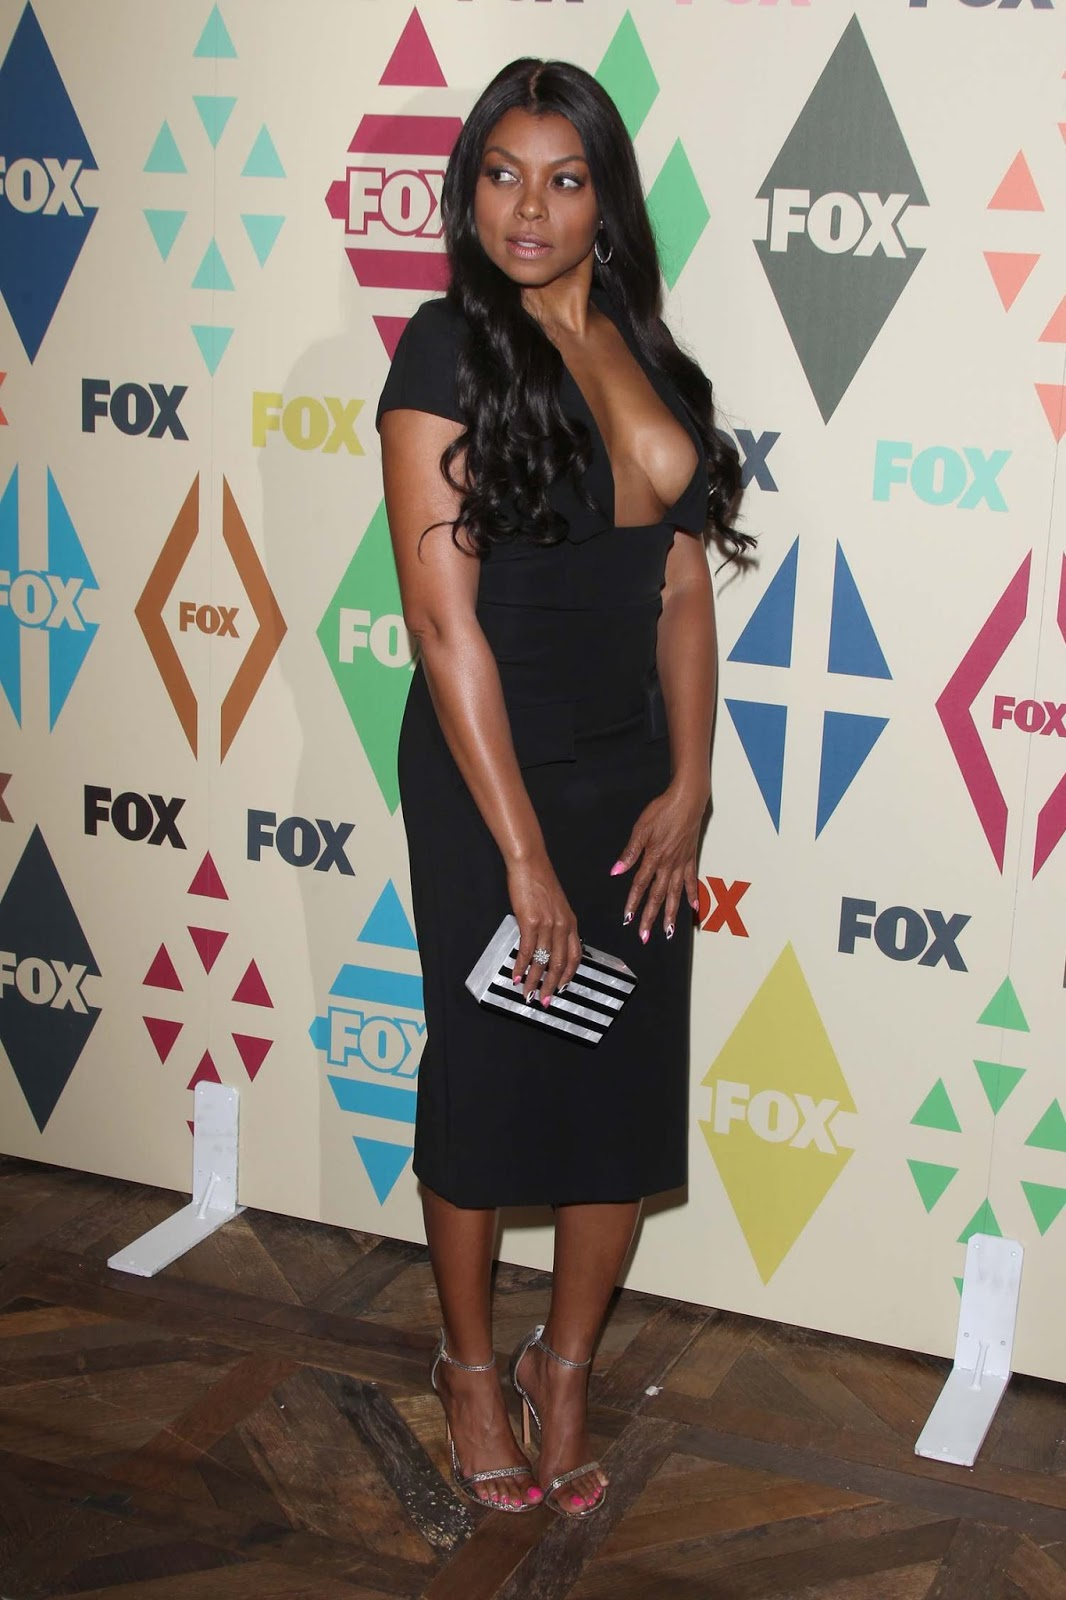 Taraji P. Henson Shows Little To Imagination at FOX Summer TCAs Party 2015